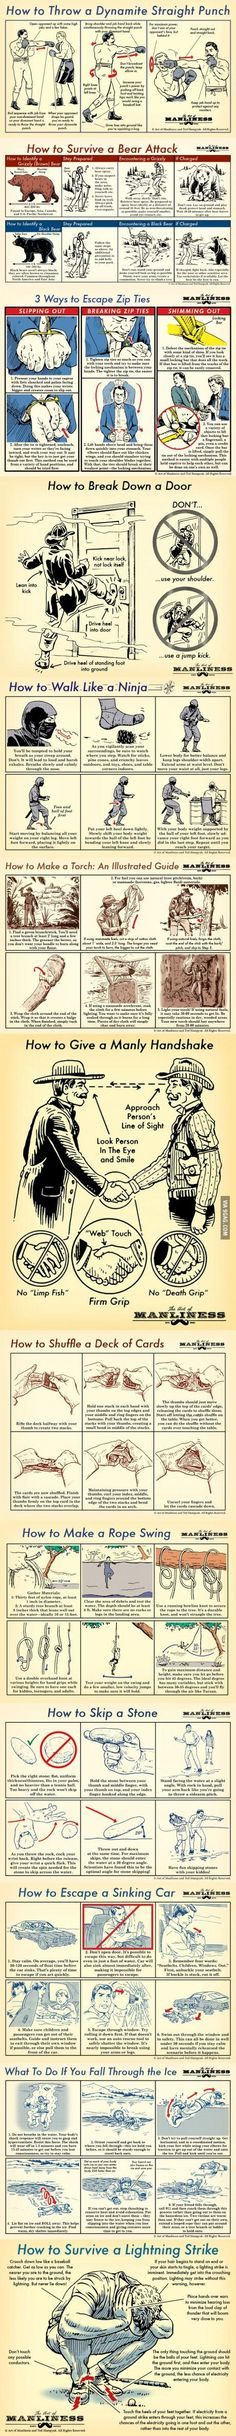 Manly Skills for men | DailyFailCentral